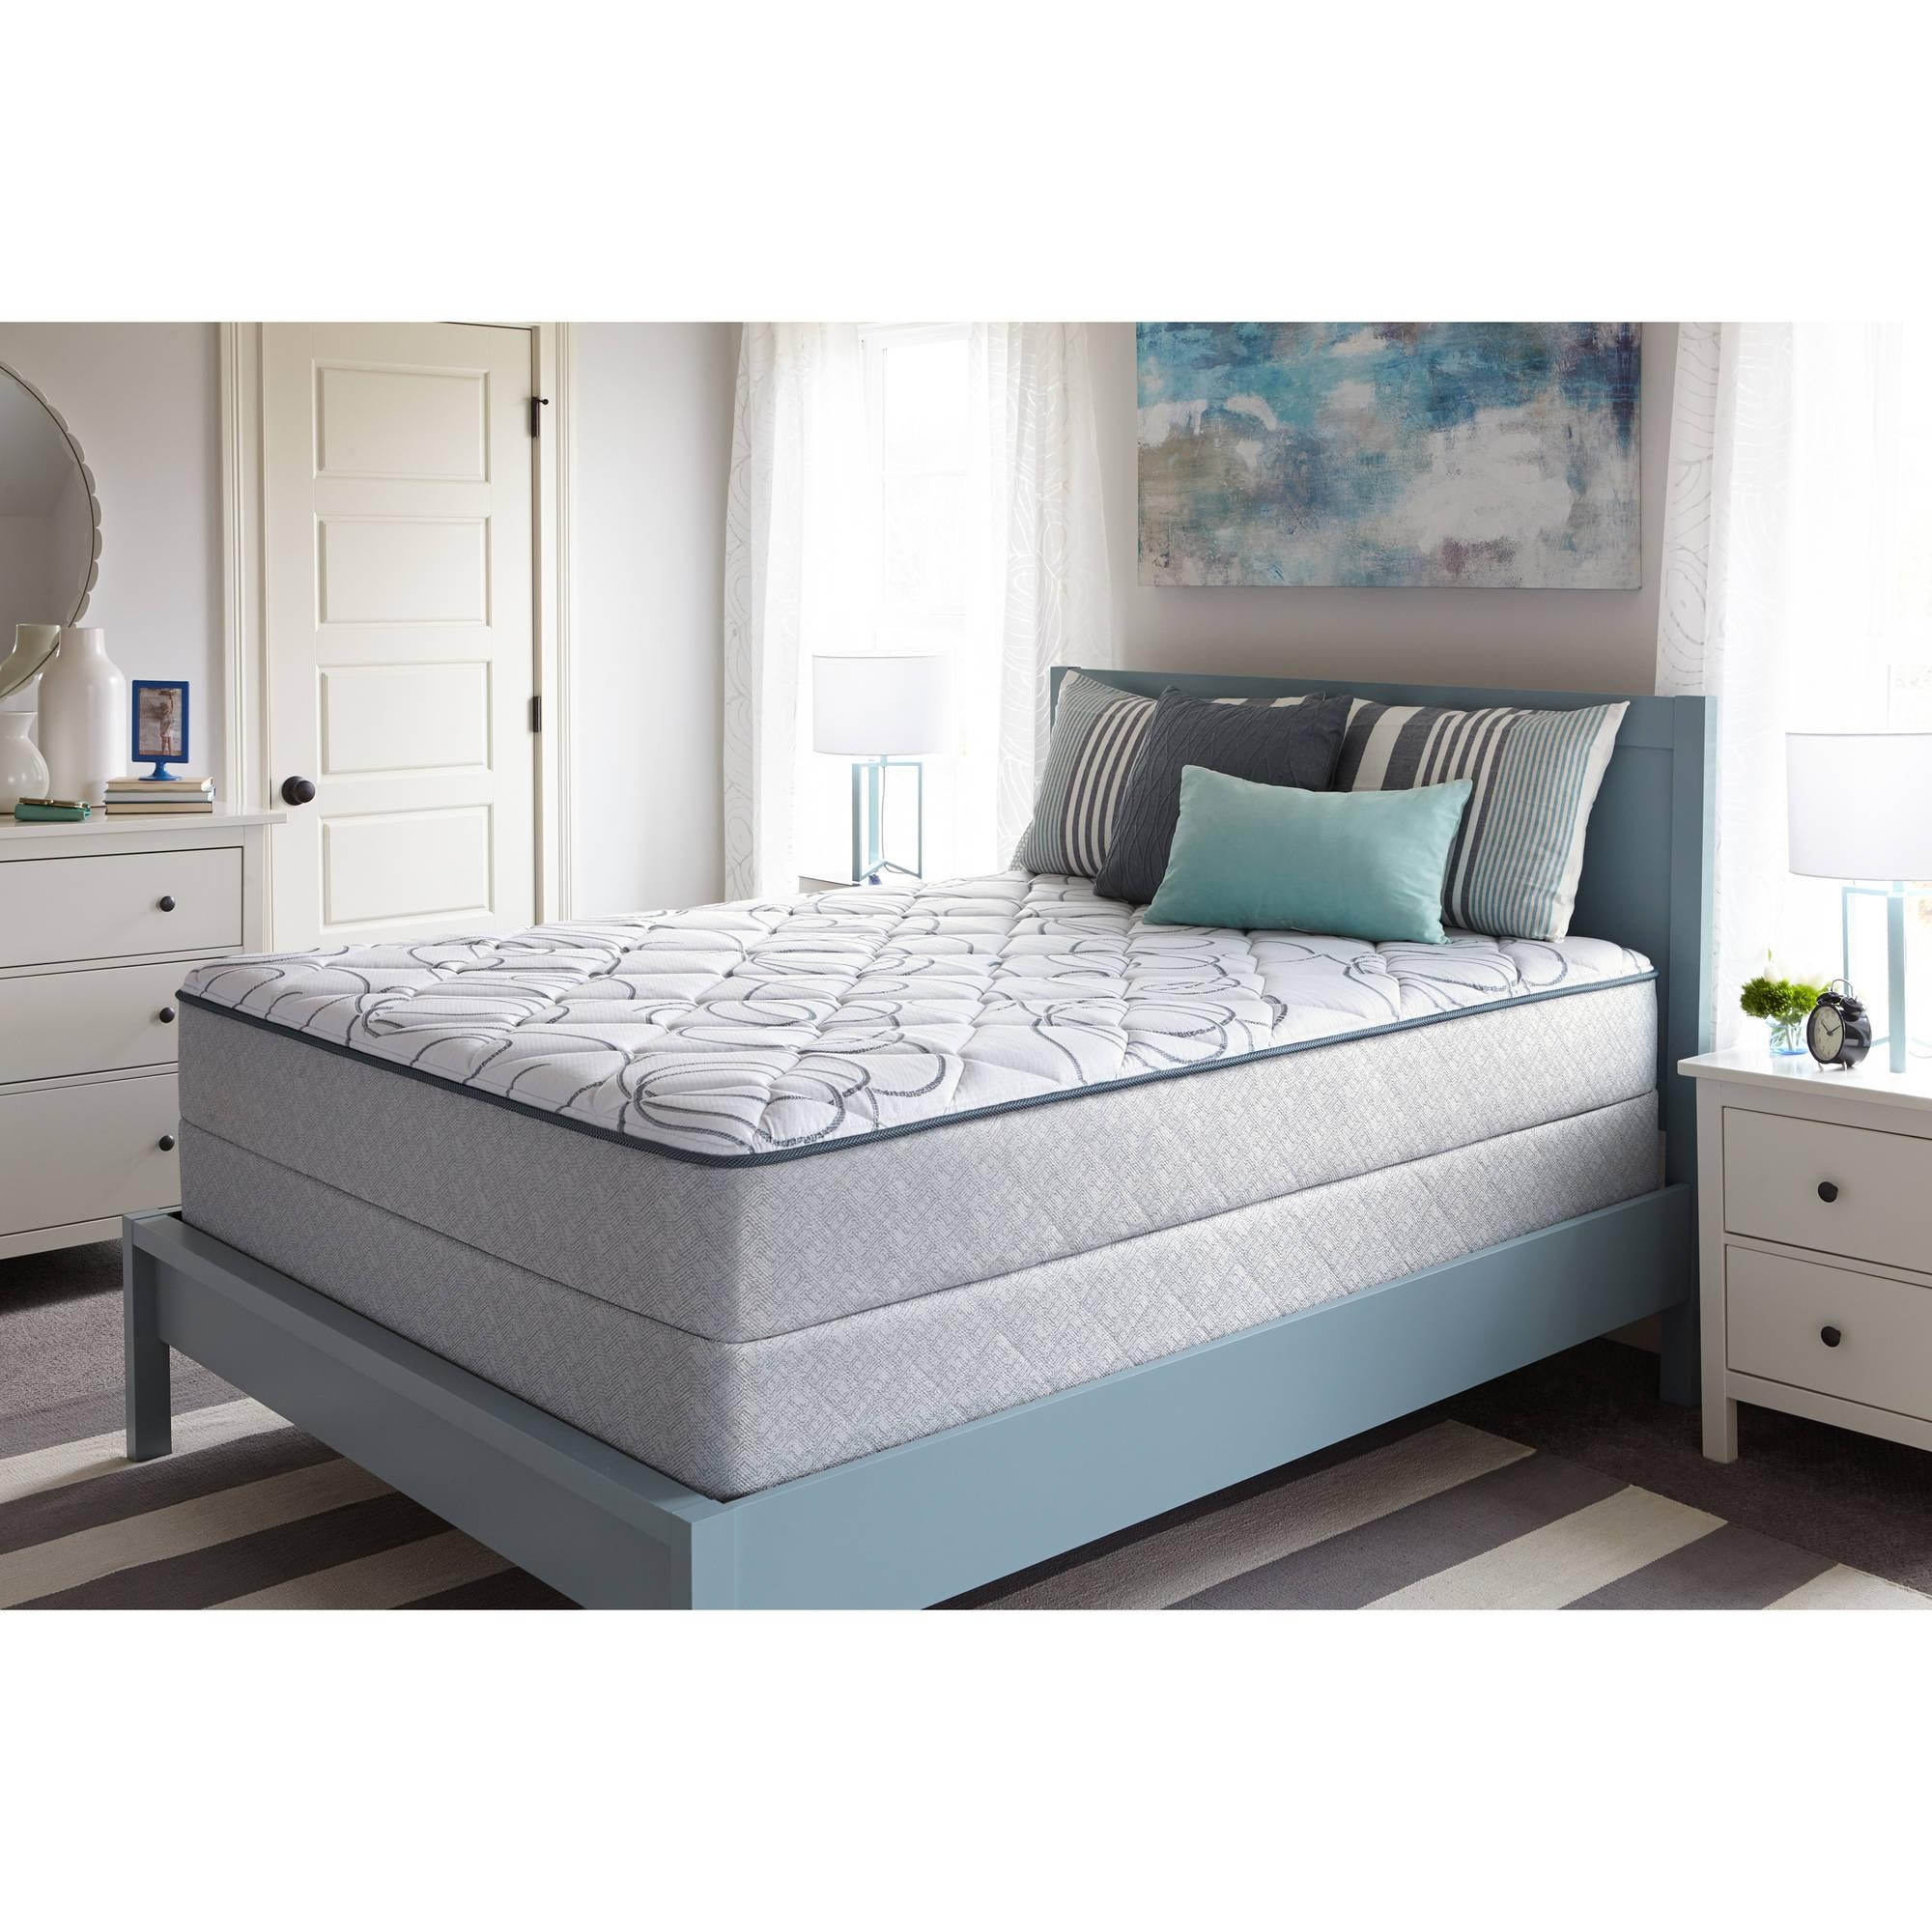 Cheap queen mattress sets near me full size of bed frames for Cheap places to get furniture near me